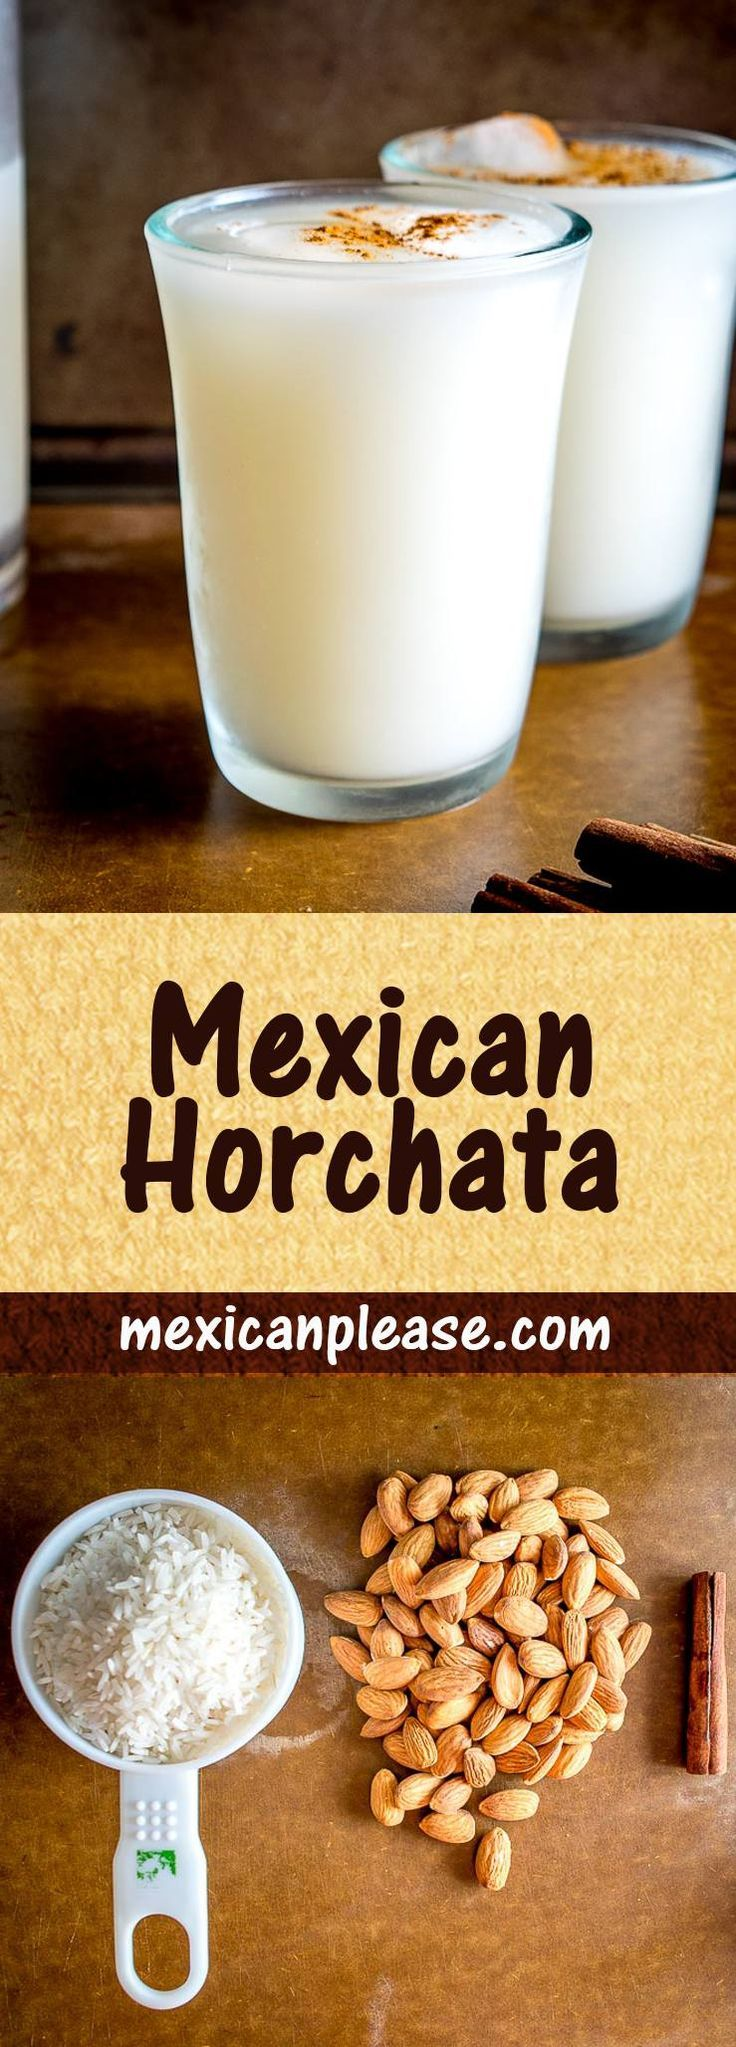 Horchata is one of Mexico's most common agua frescas:  an easy-to-make rice flavored drink that offers up all sorts of great combos.  Lately I've been adding coconut milk to it -- yum!  #horchata  mexicanplease.com